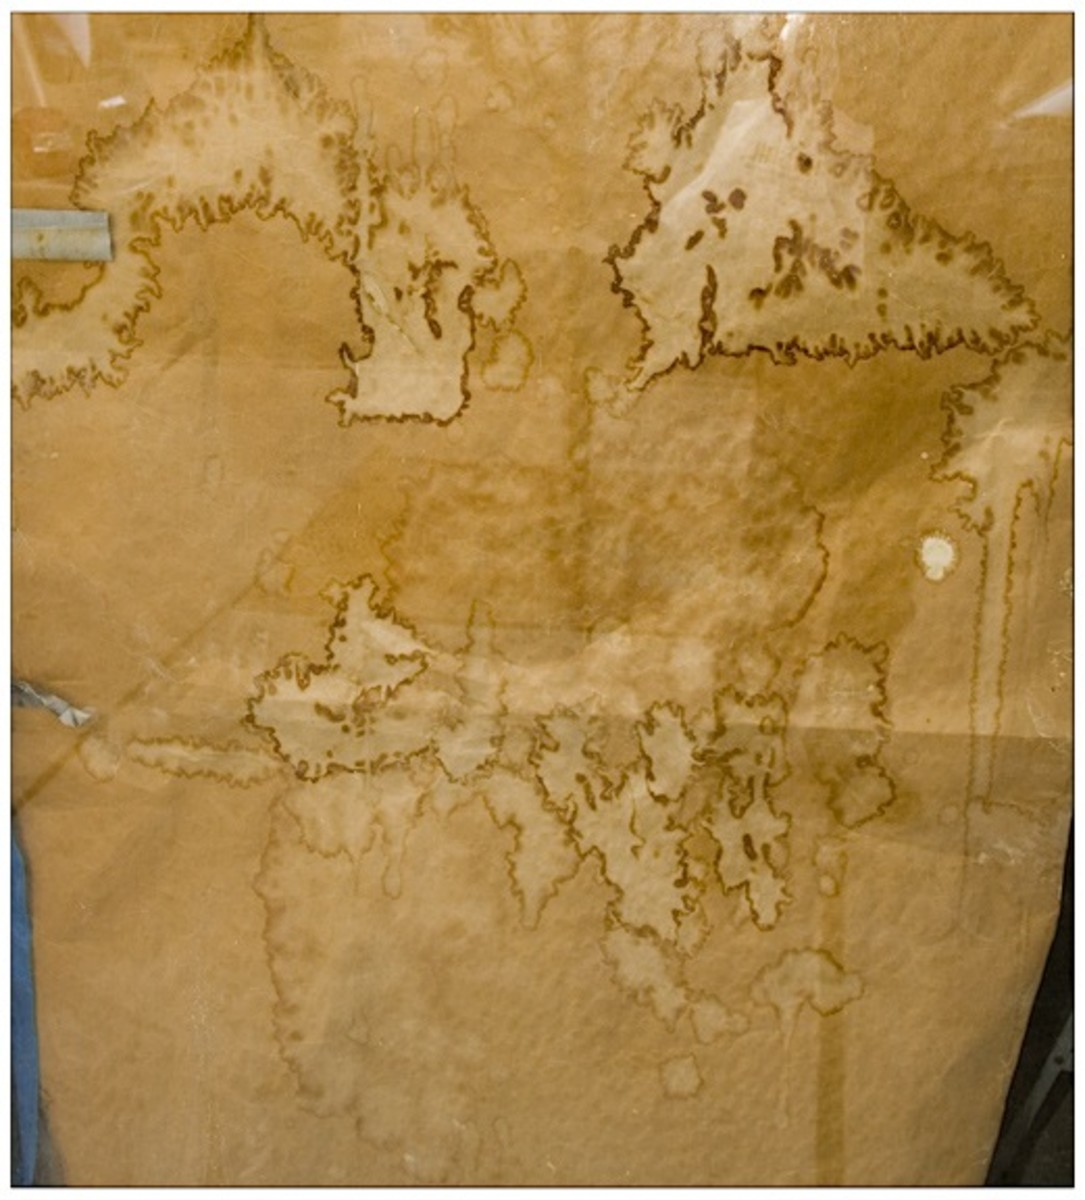 Great treasure map paper (Creative Commons)